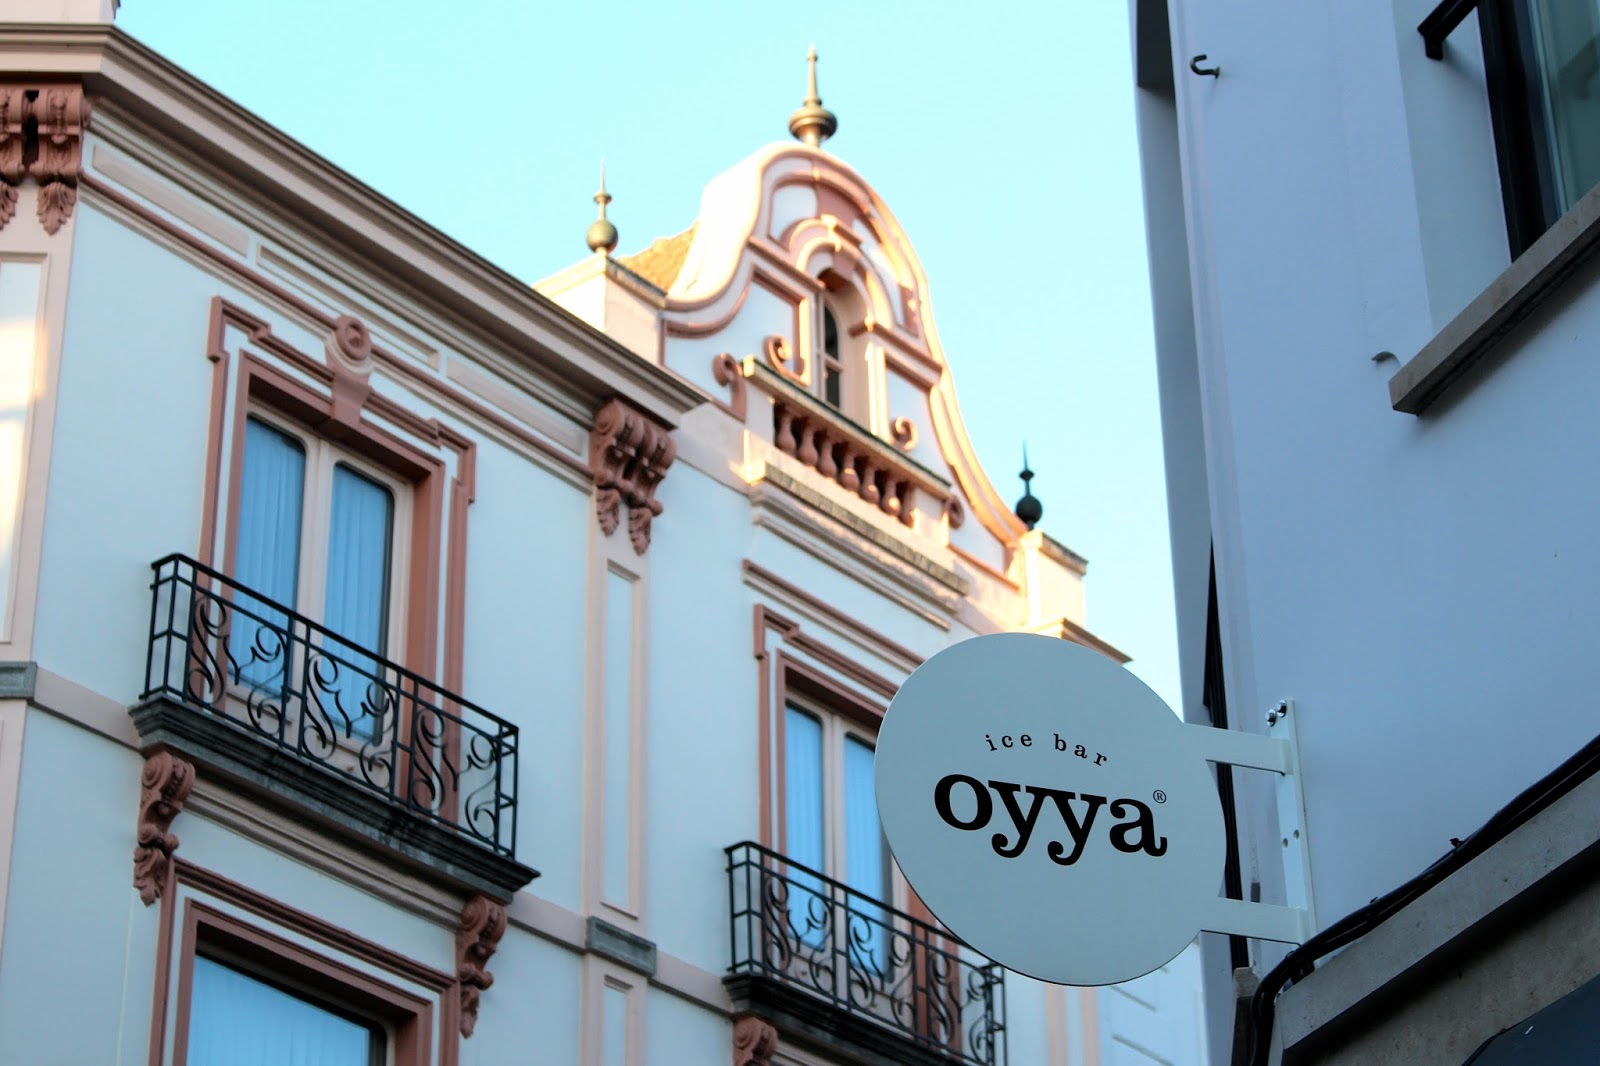 Oyya ice cream bruges belgium travel blog review